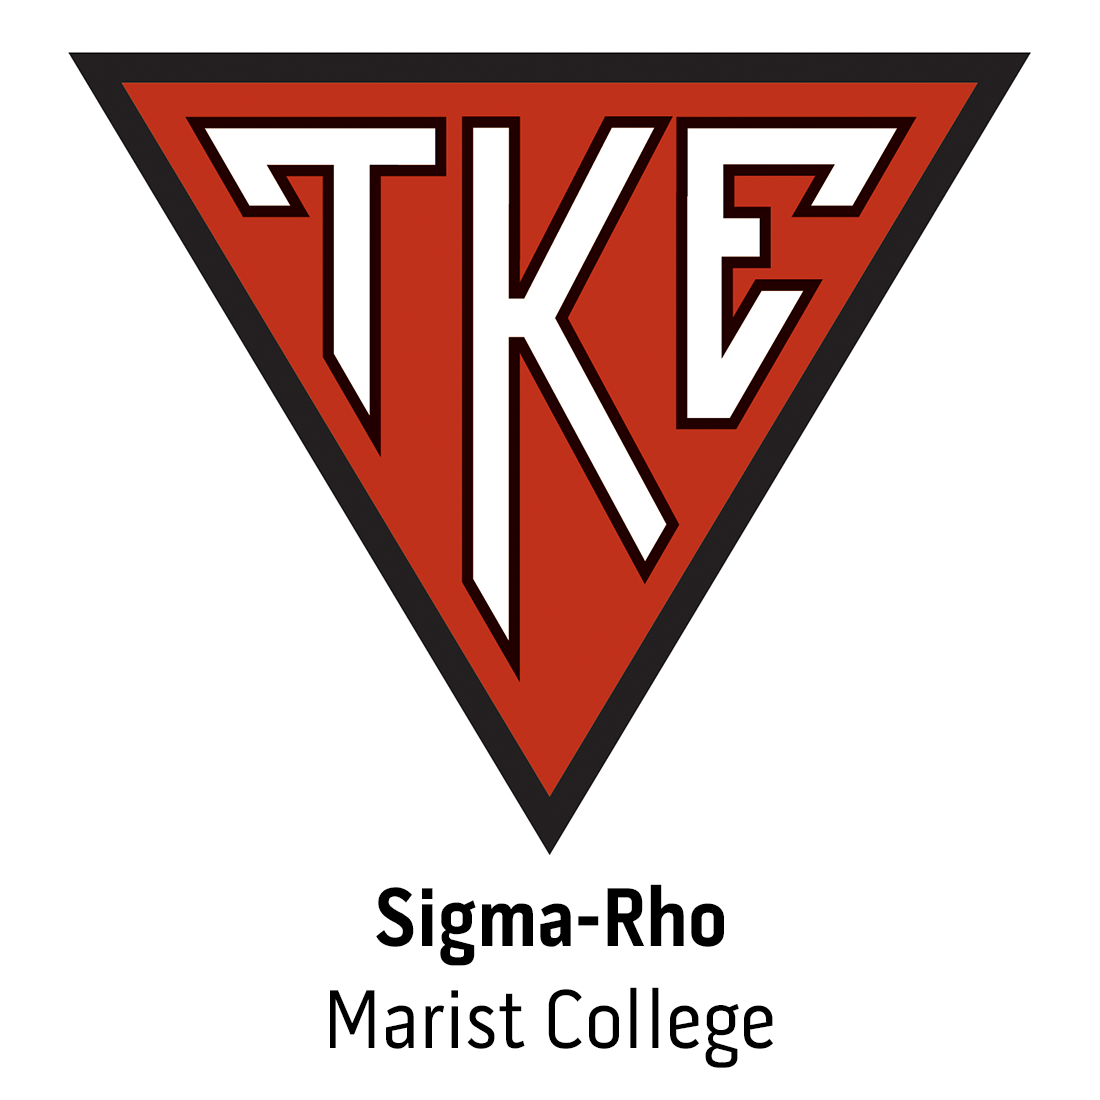 Sigma-Rho Chapter at Marist College